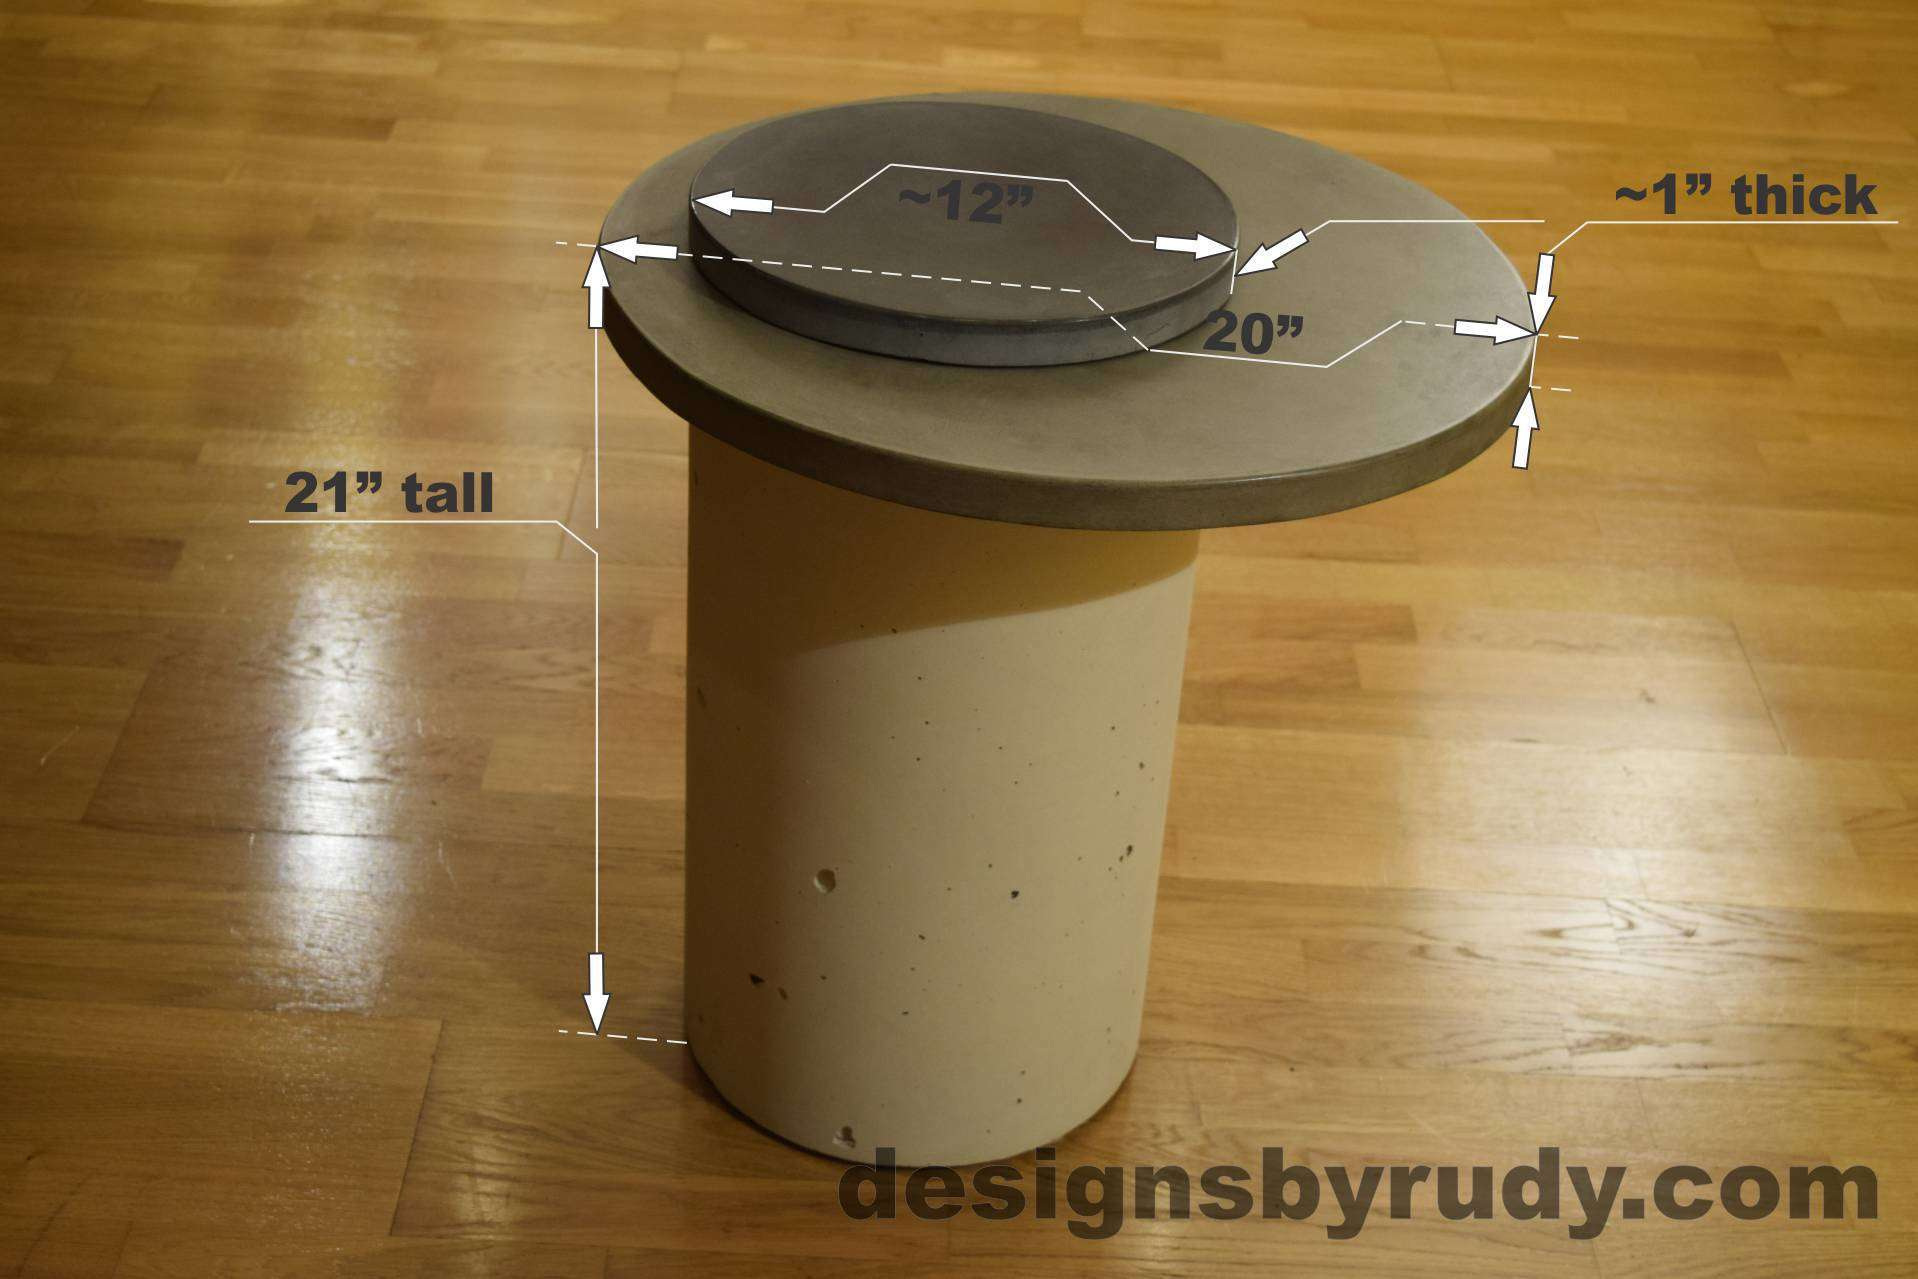 White Concrete Side Table dimensions, Pillars model, Designs by Rudy L